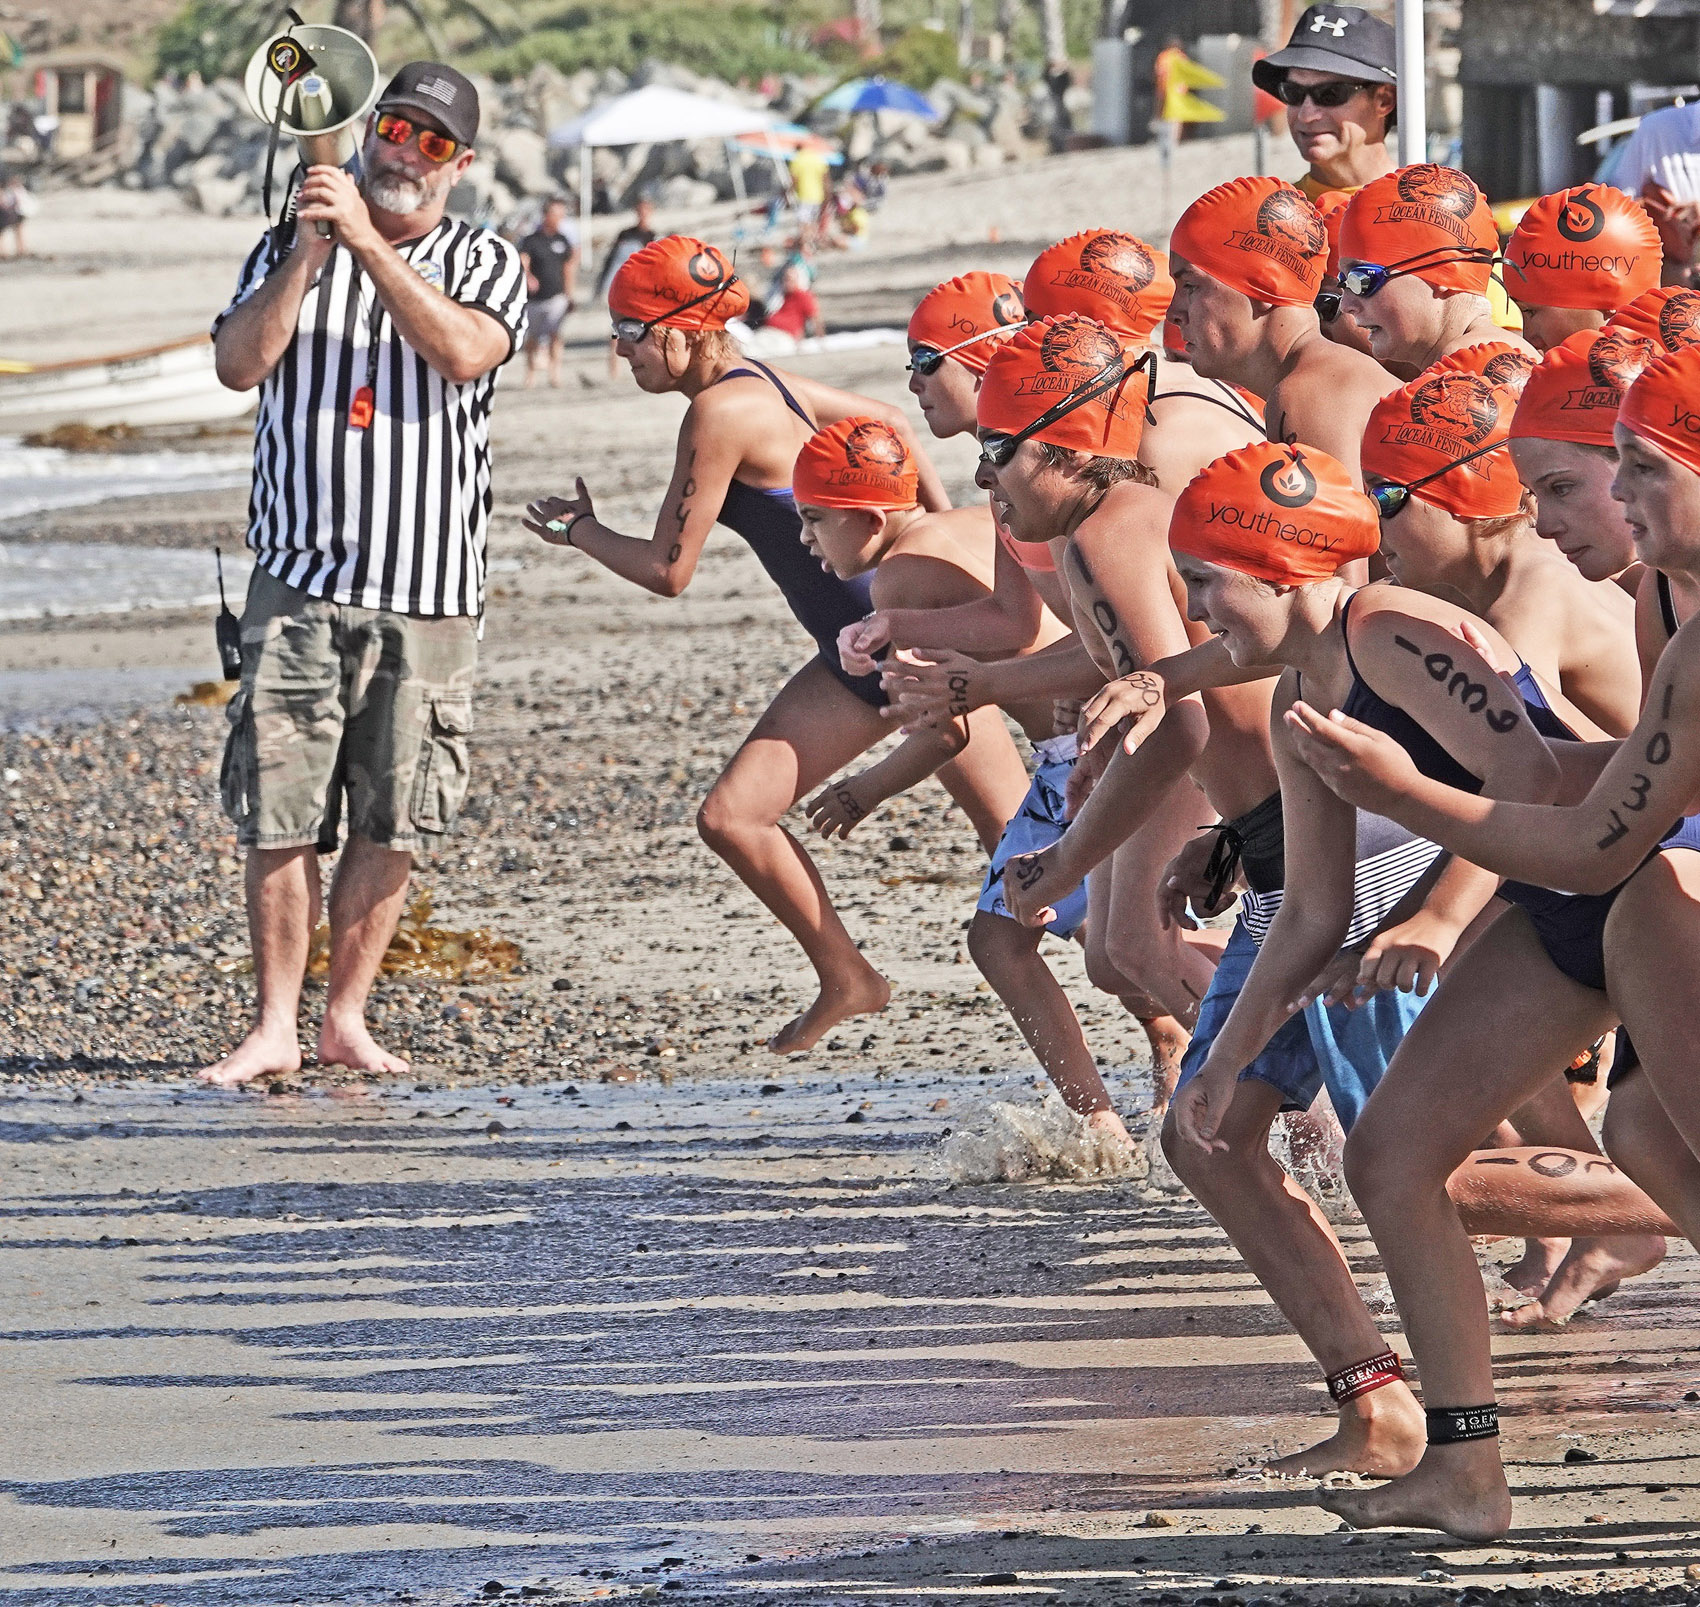 San Clemente junior lifeguards sprint for the water in their division of San Clemente Ocean Festival surf races. Photo: Fred Swegles